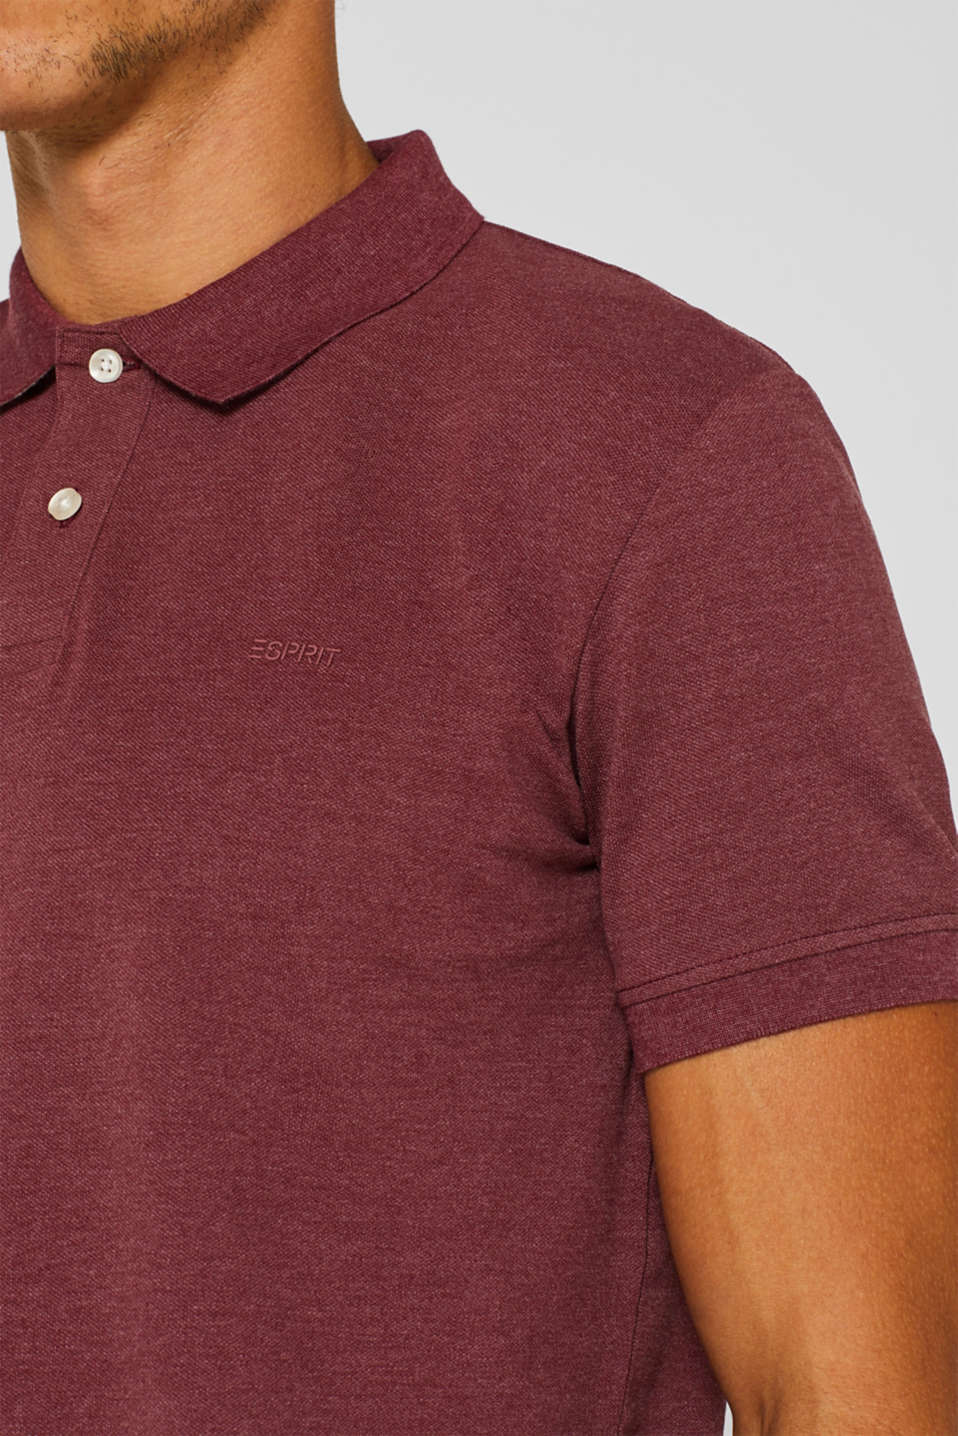 Piqué polo shirt in blended cotton, BORDEAUX RED, detail image number 1